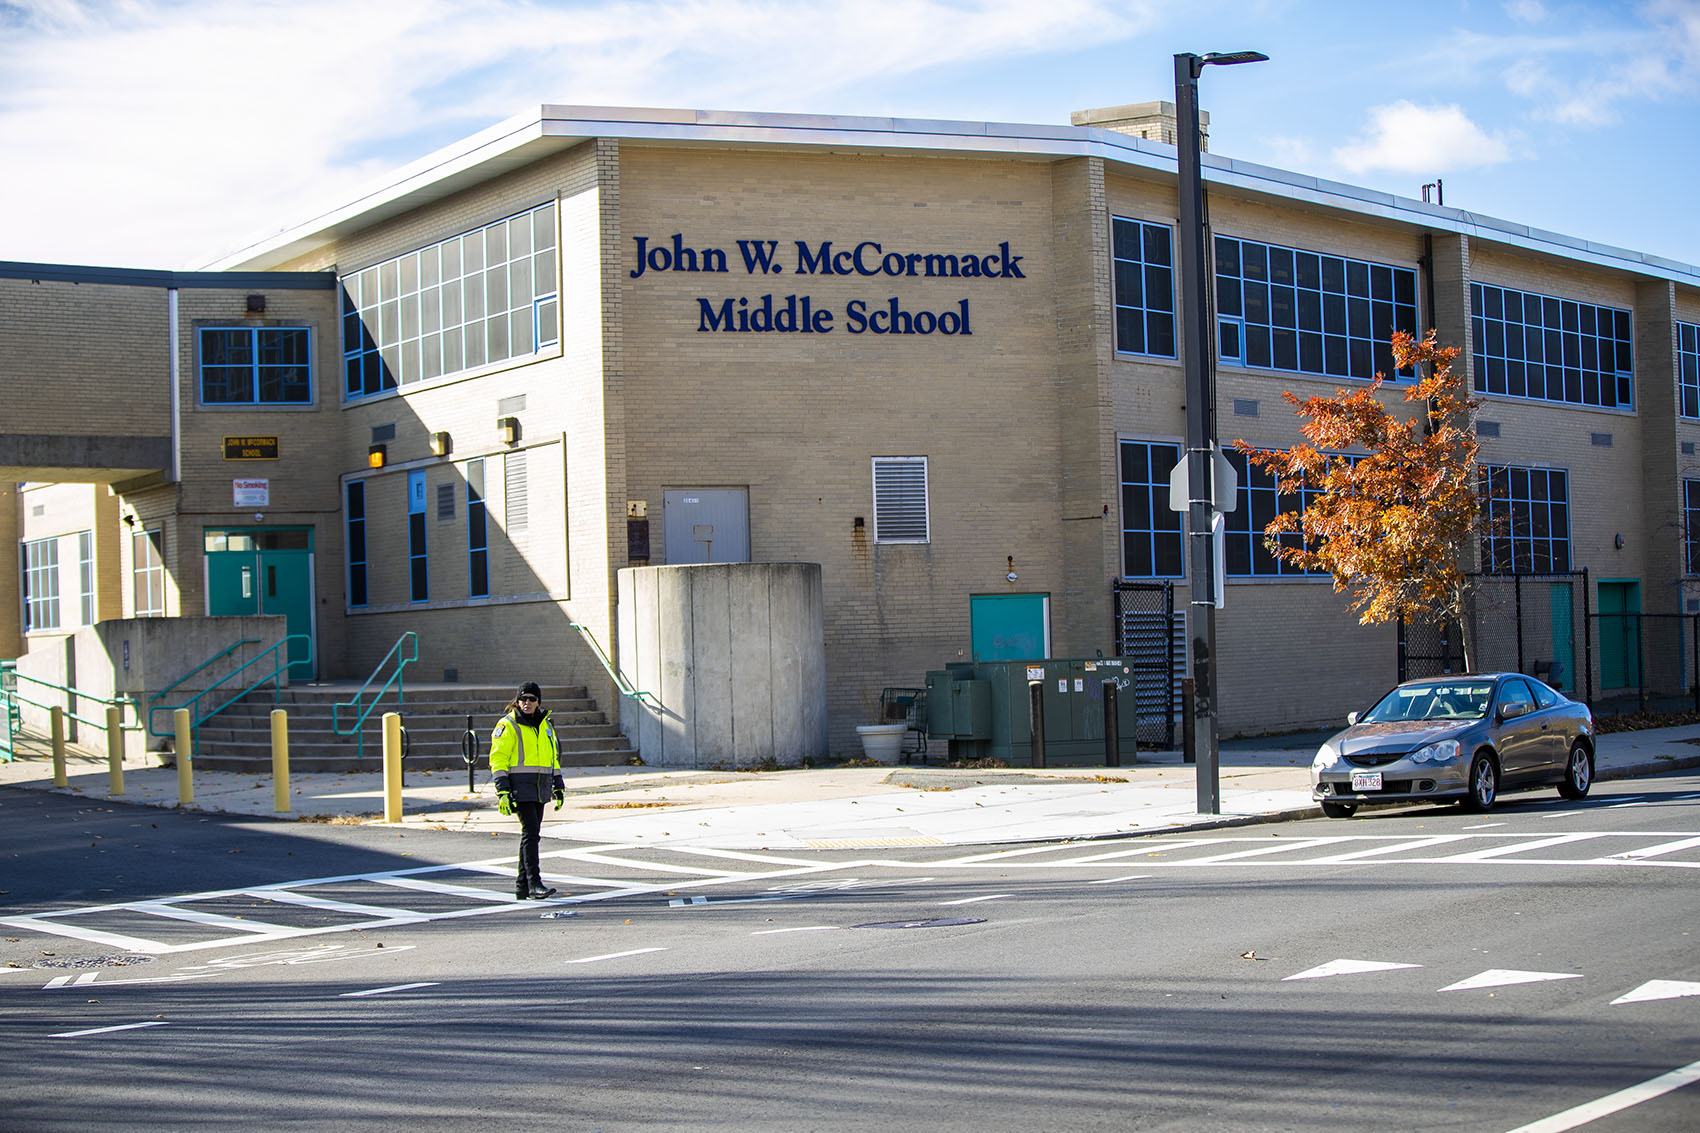 The John W. McCormack Middle School on Columbia Point, which is slated to close in 2020. (Jesse Costa/WBUR)